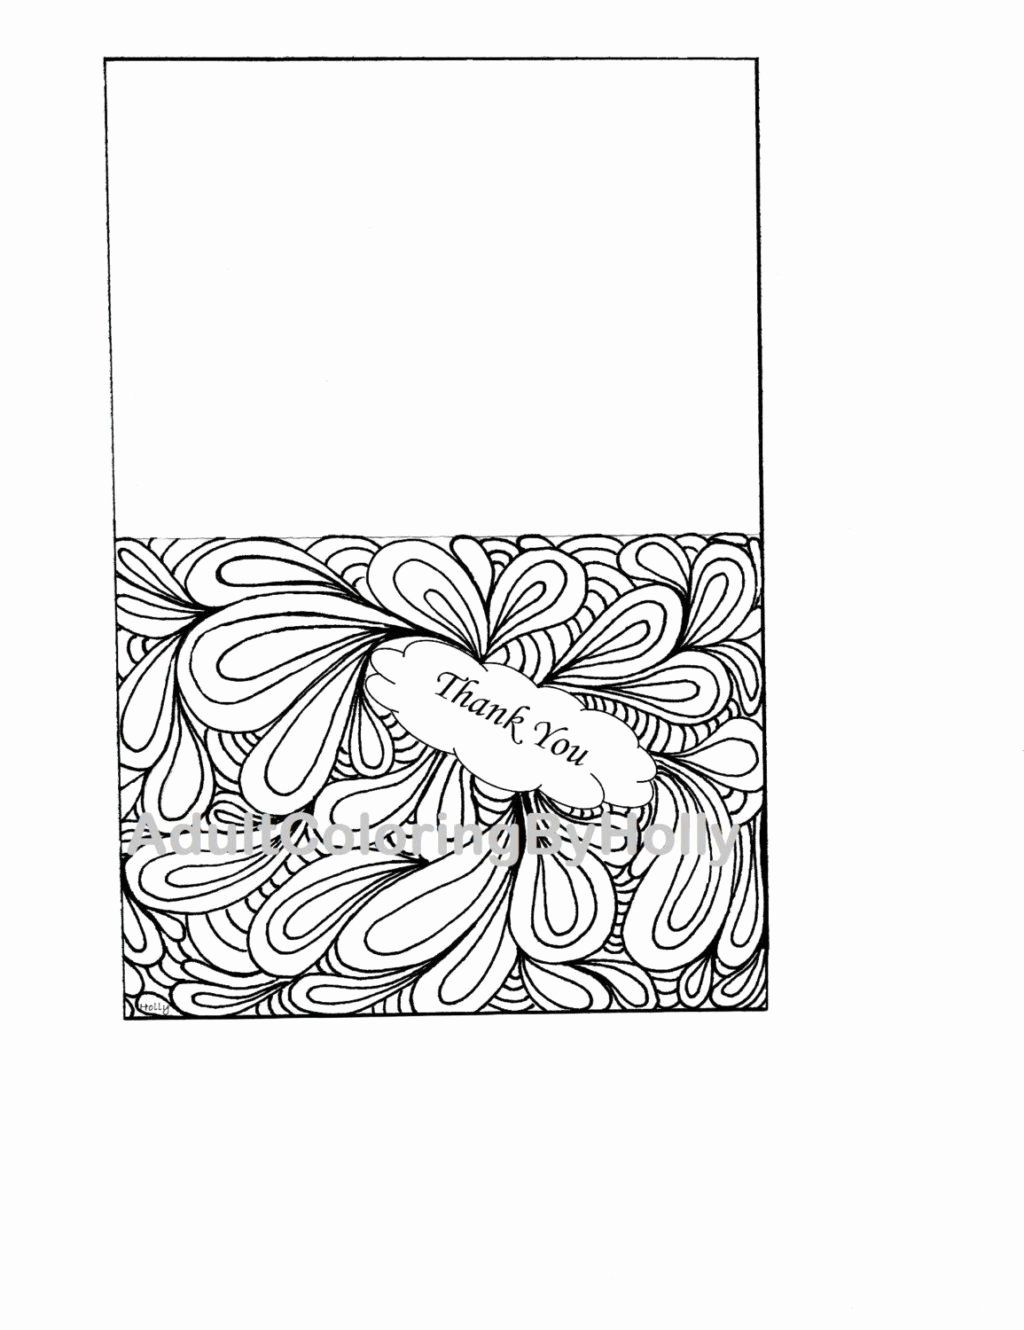 Thank You Coloring Page Fresh Coloring Coloring Page Printable Digital Download Thank Valentine Coloring Pages Mermaid Coloring Pages Barbie Coloring Pages